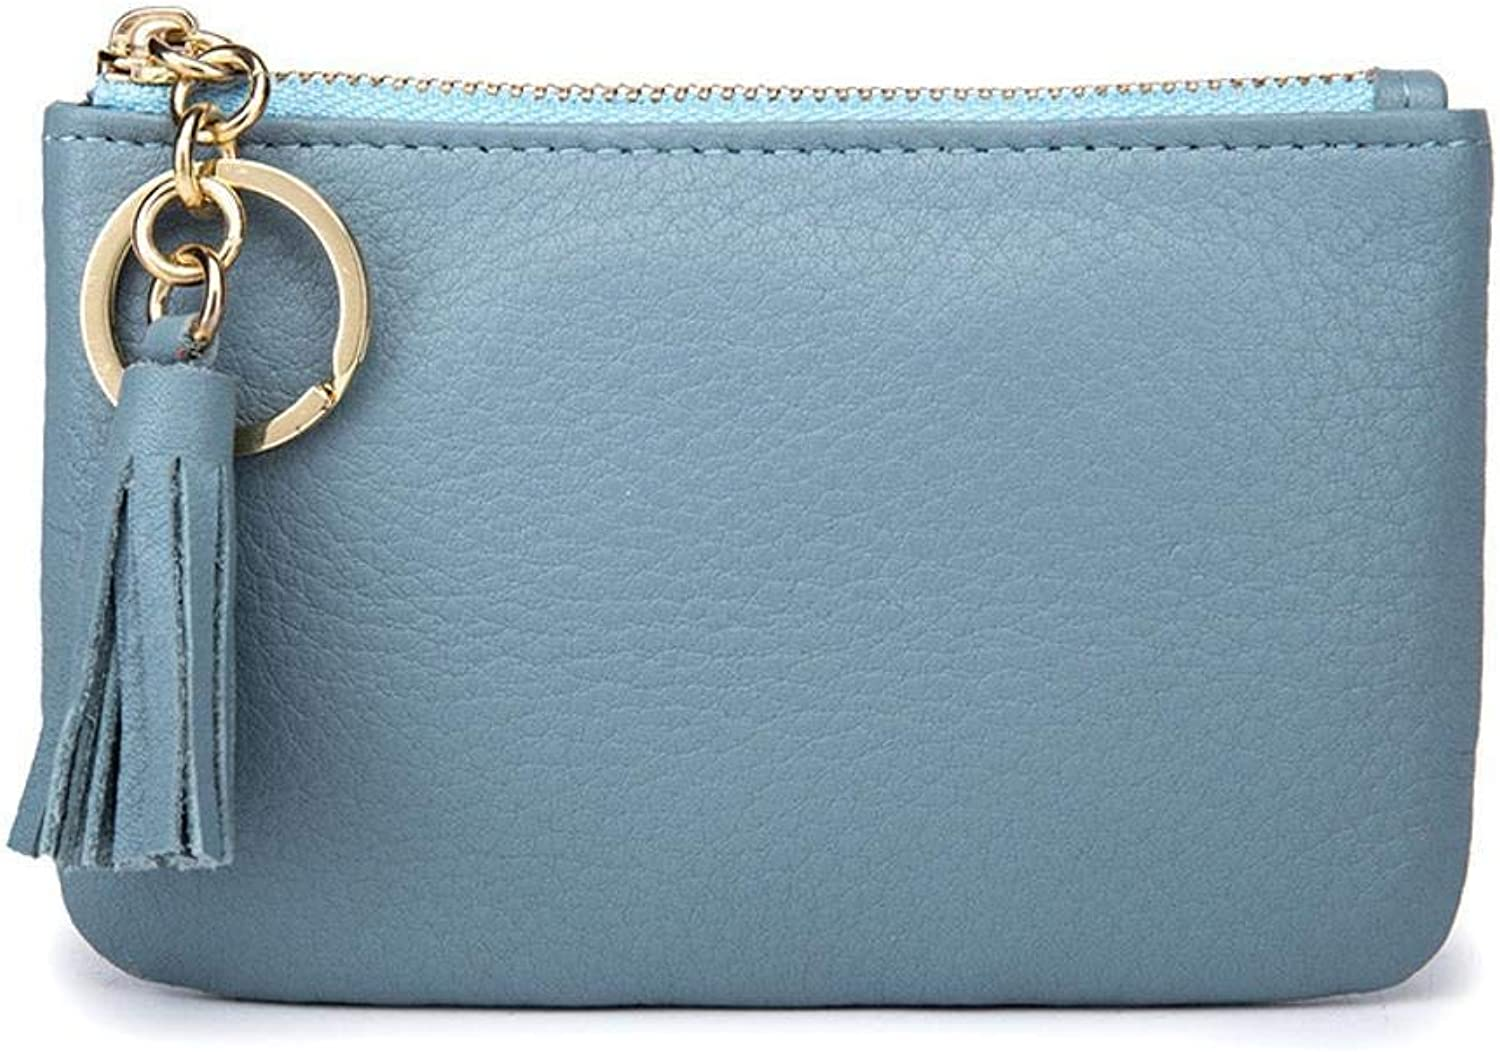 Girls Purse Women's Wallet Ladies Wallet Coin Zipper Hand Bag